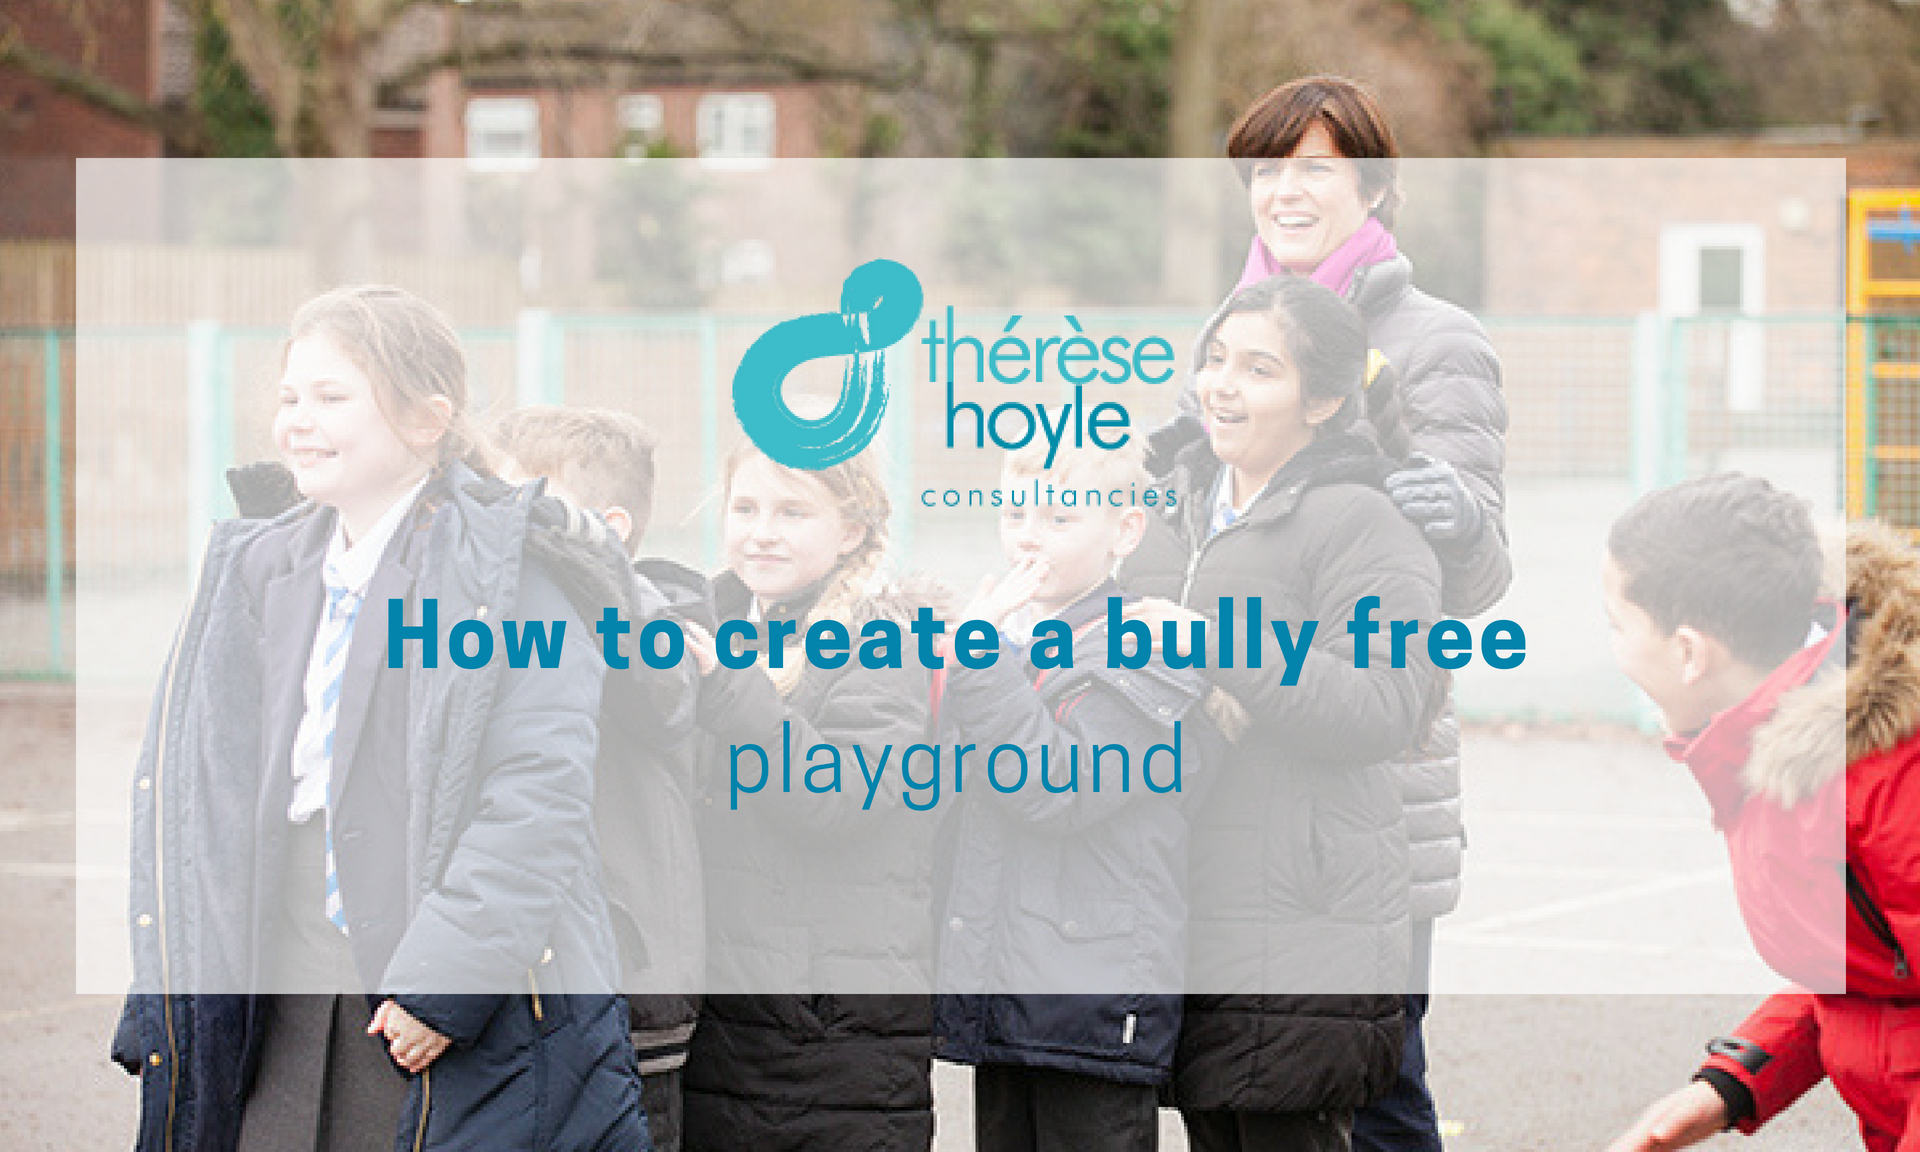 How to create a bully free playground